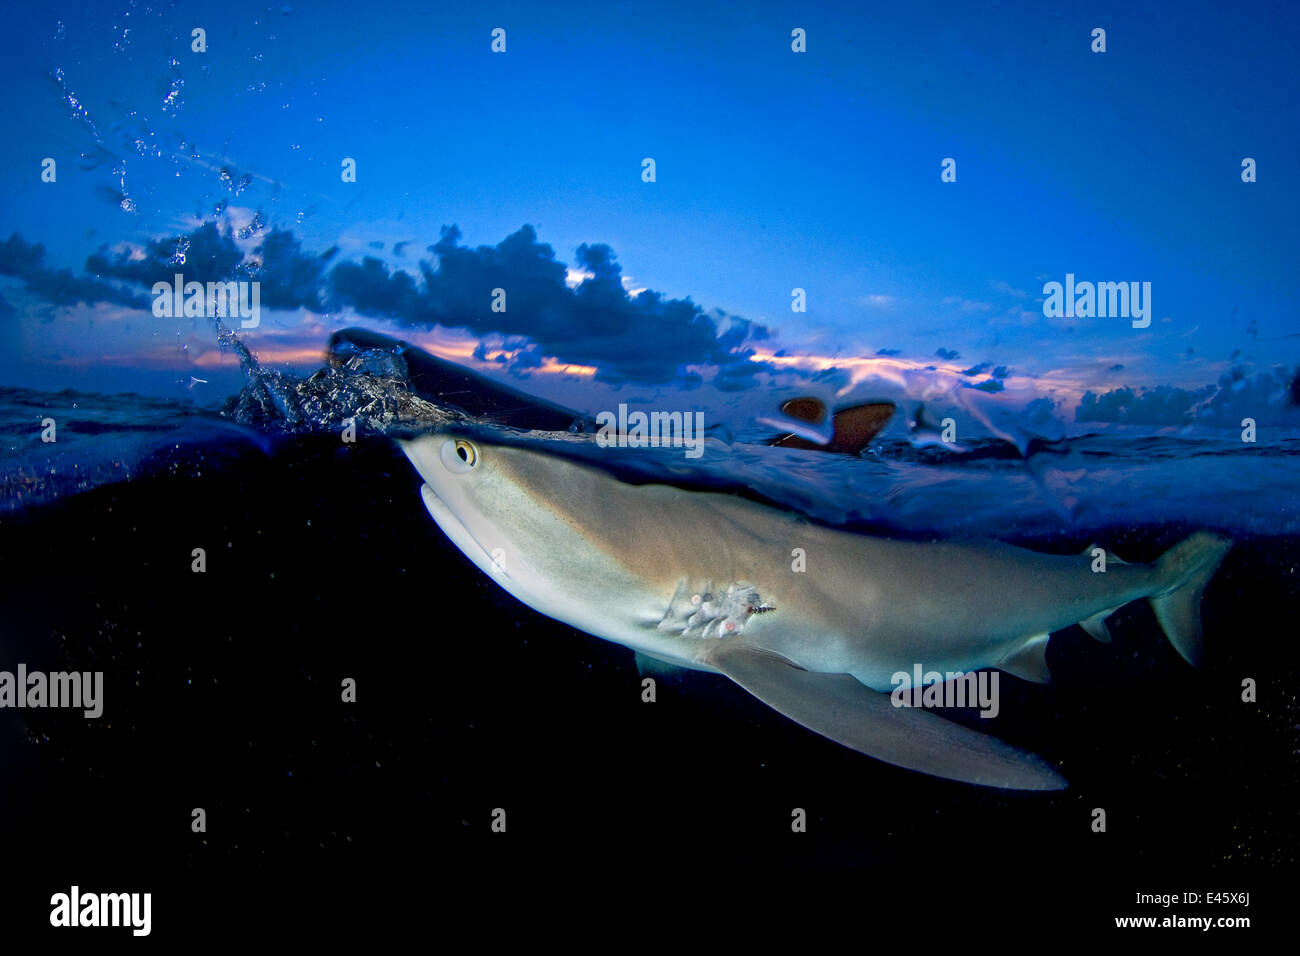 Split level image of Caribbean reef shark (Carcharhinus perezi) breaking surface at dusk. Grand Bahama, Bahamas. - Stock Image